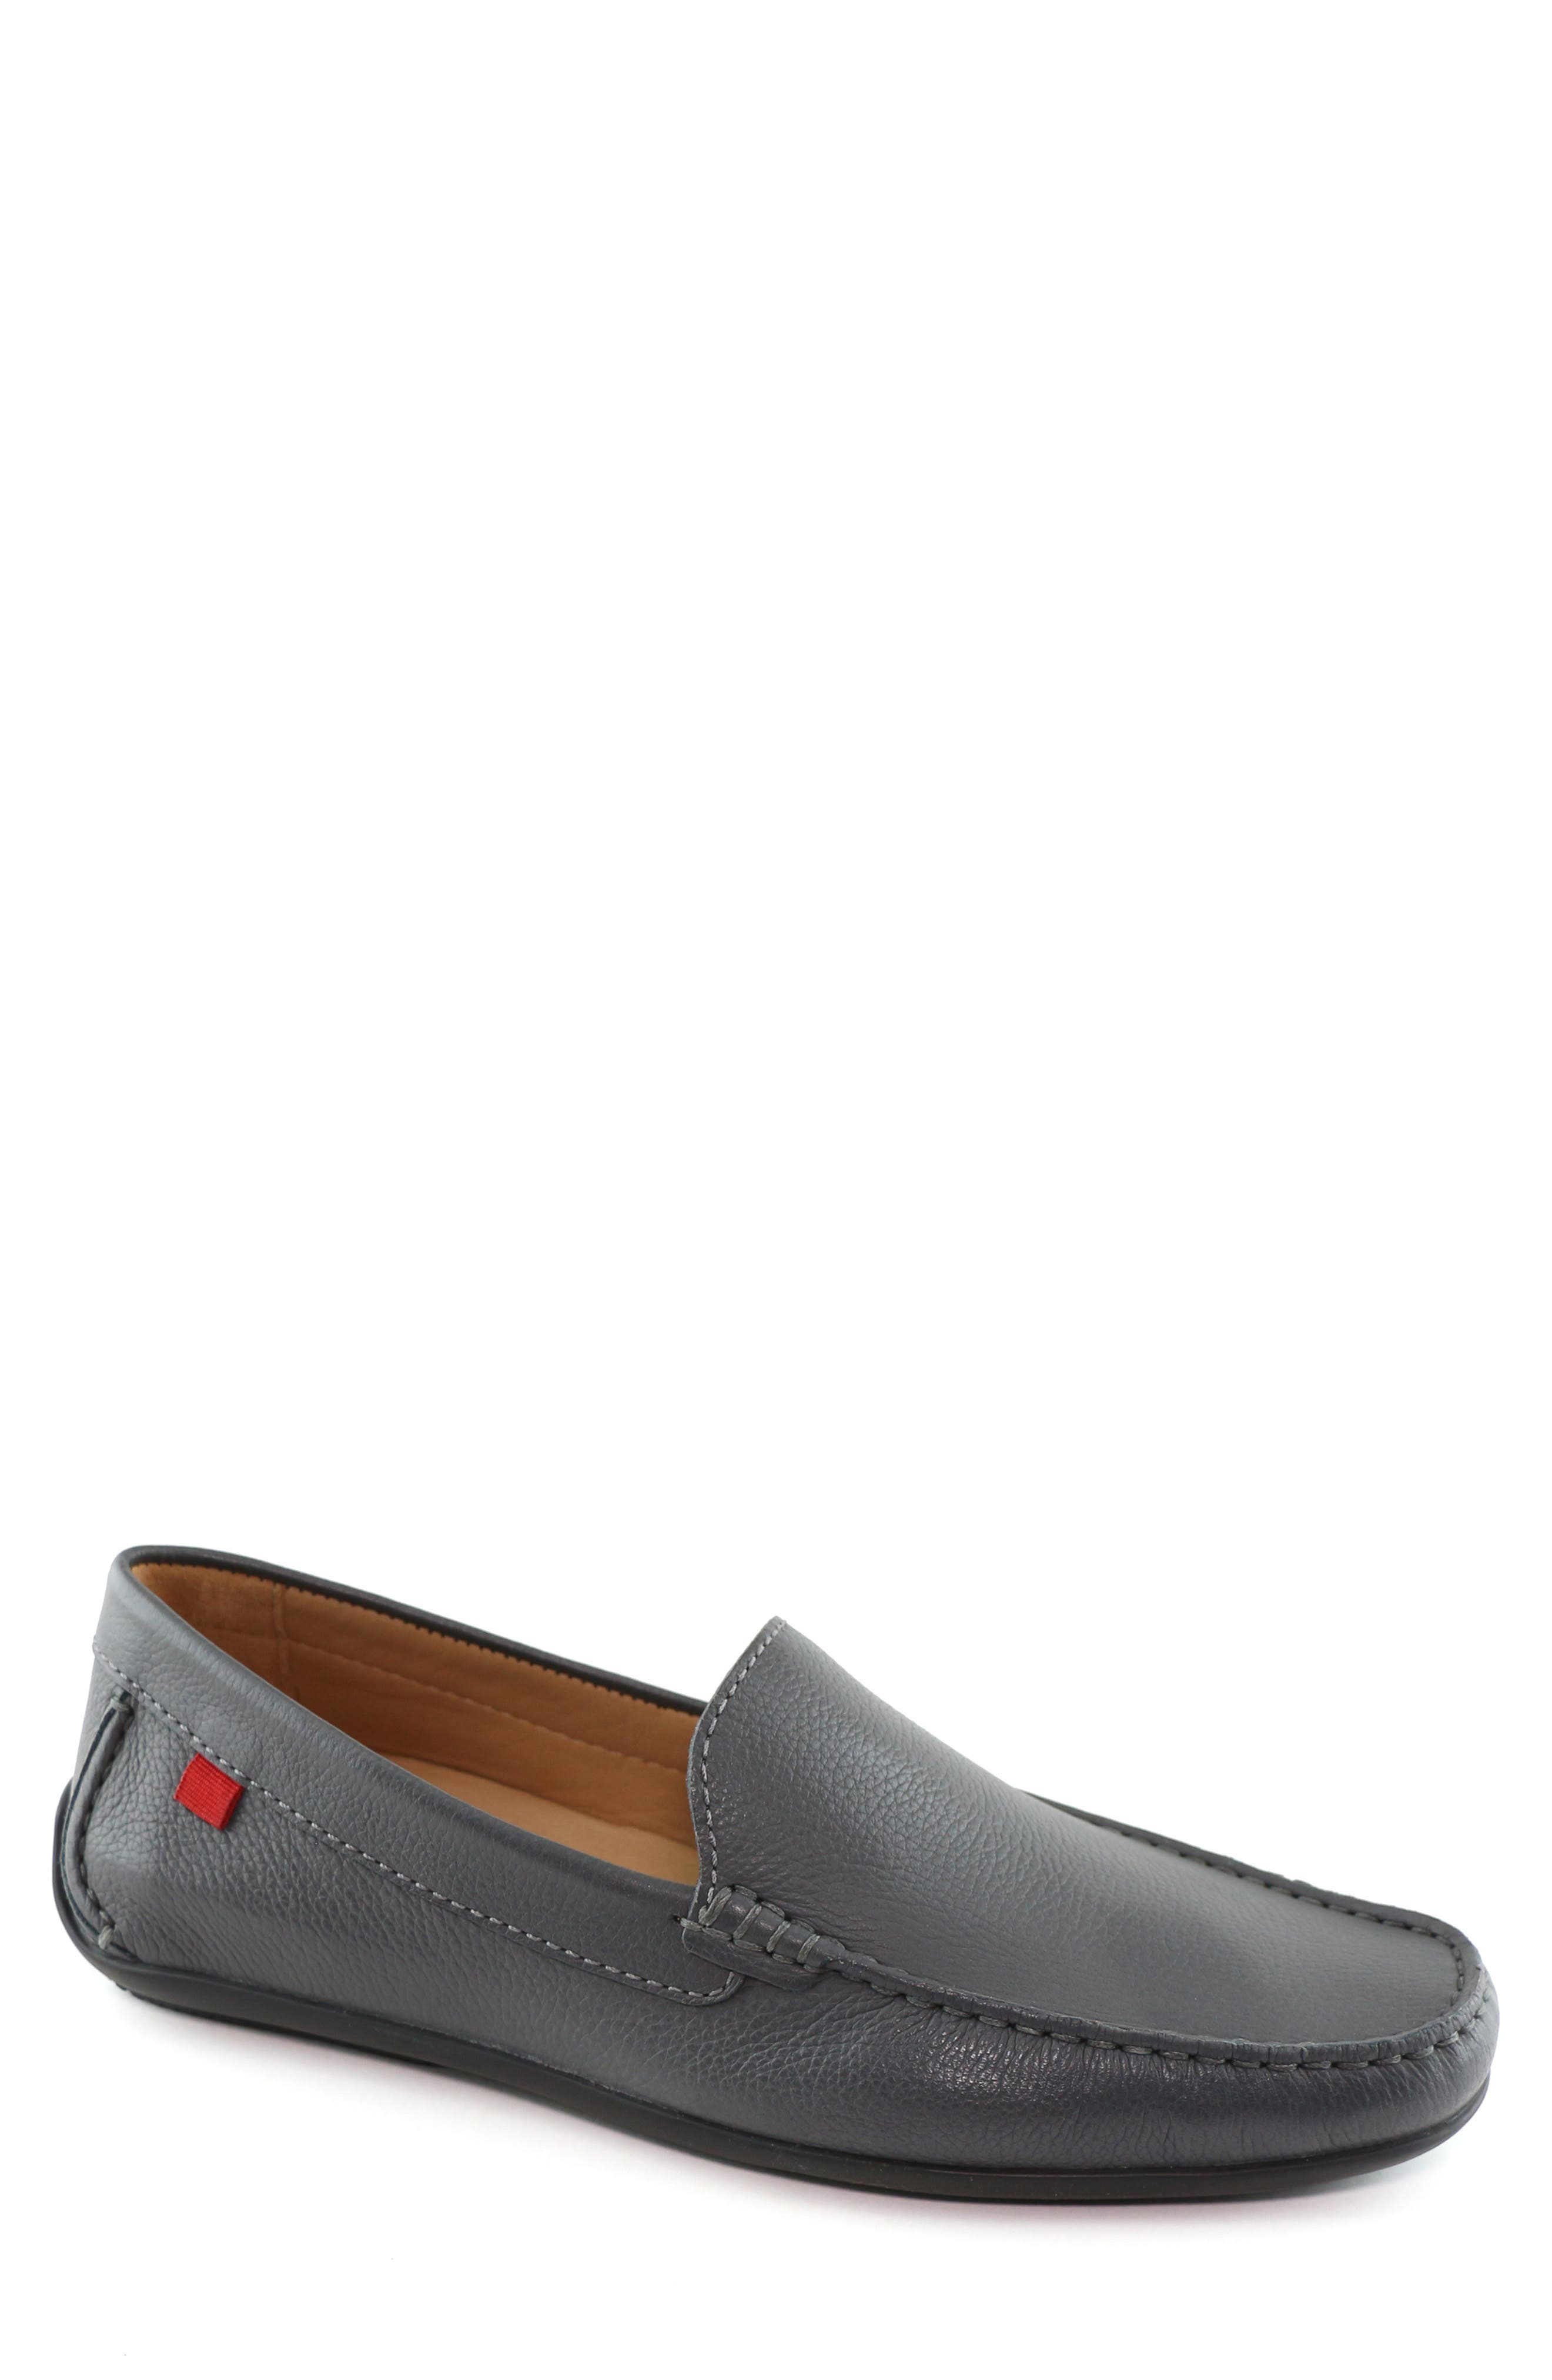 MARC JOSEPH NEW YORK 'Broadway' Driving Shoe, Main, color, GREY LEATHER